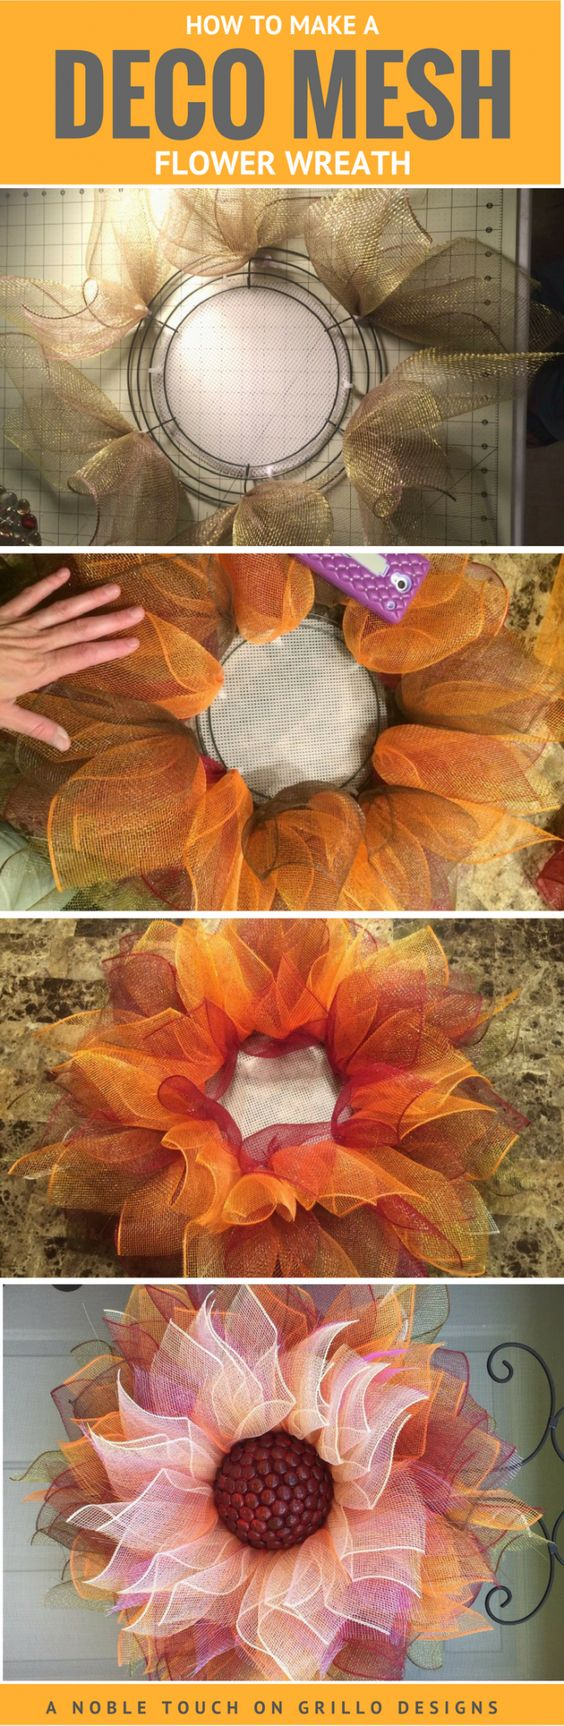 Easy DIY Flower Deco Mesh Wreath.